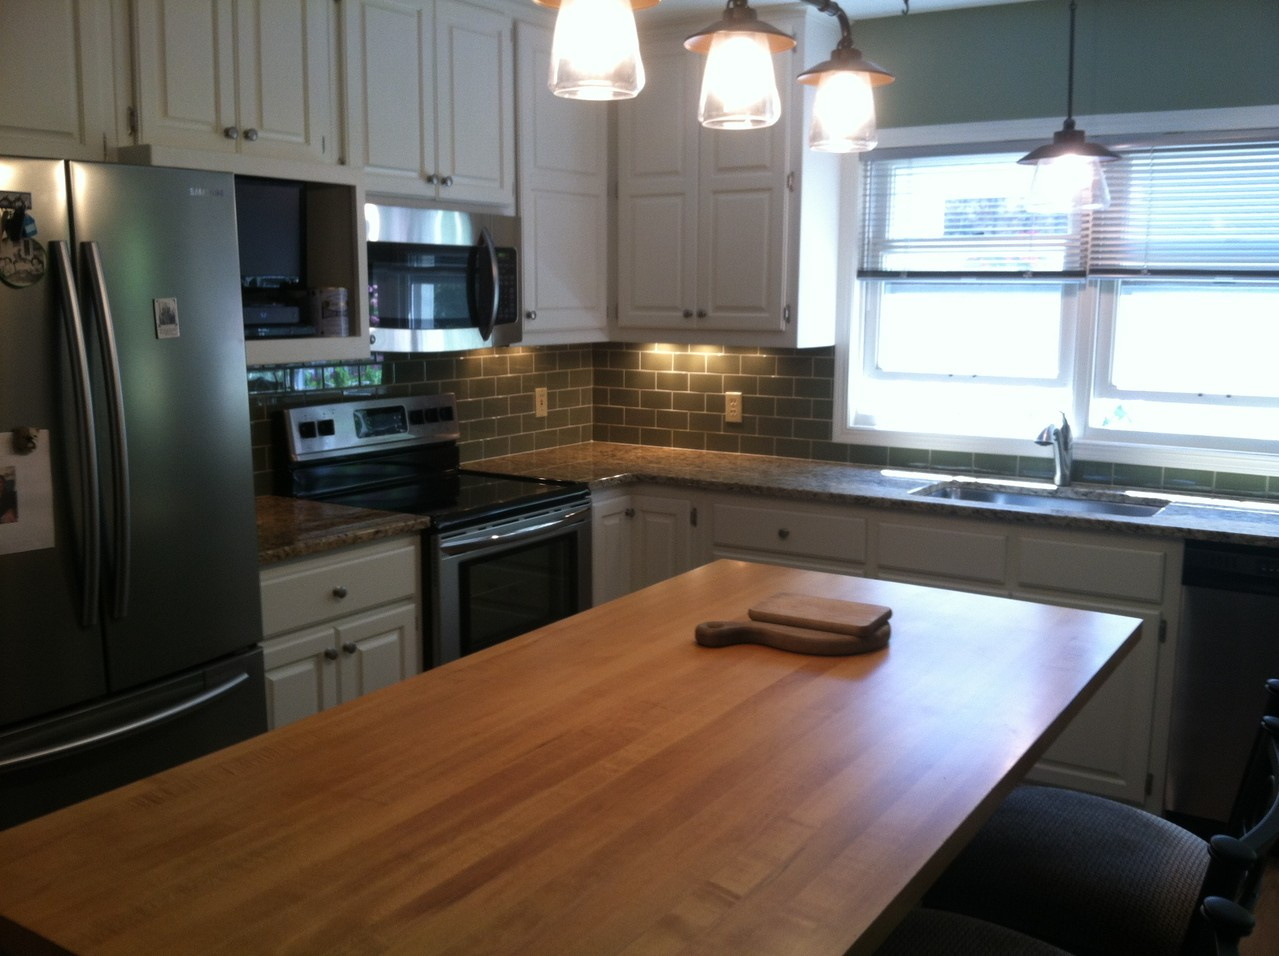 Re-finished Wood island countertop